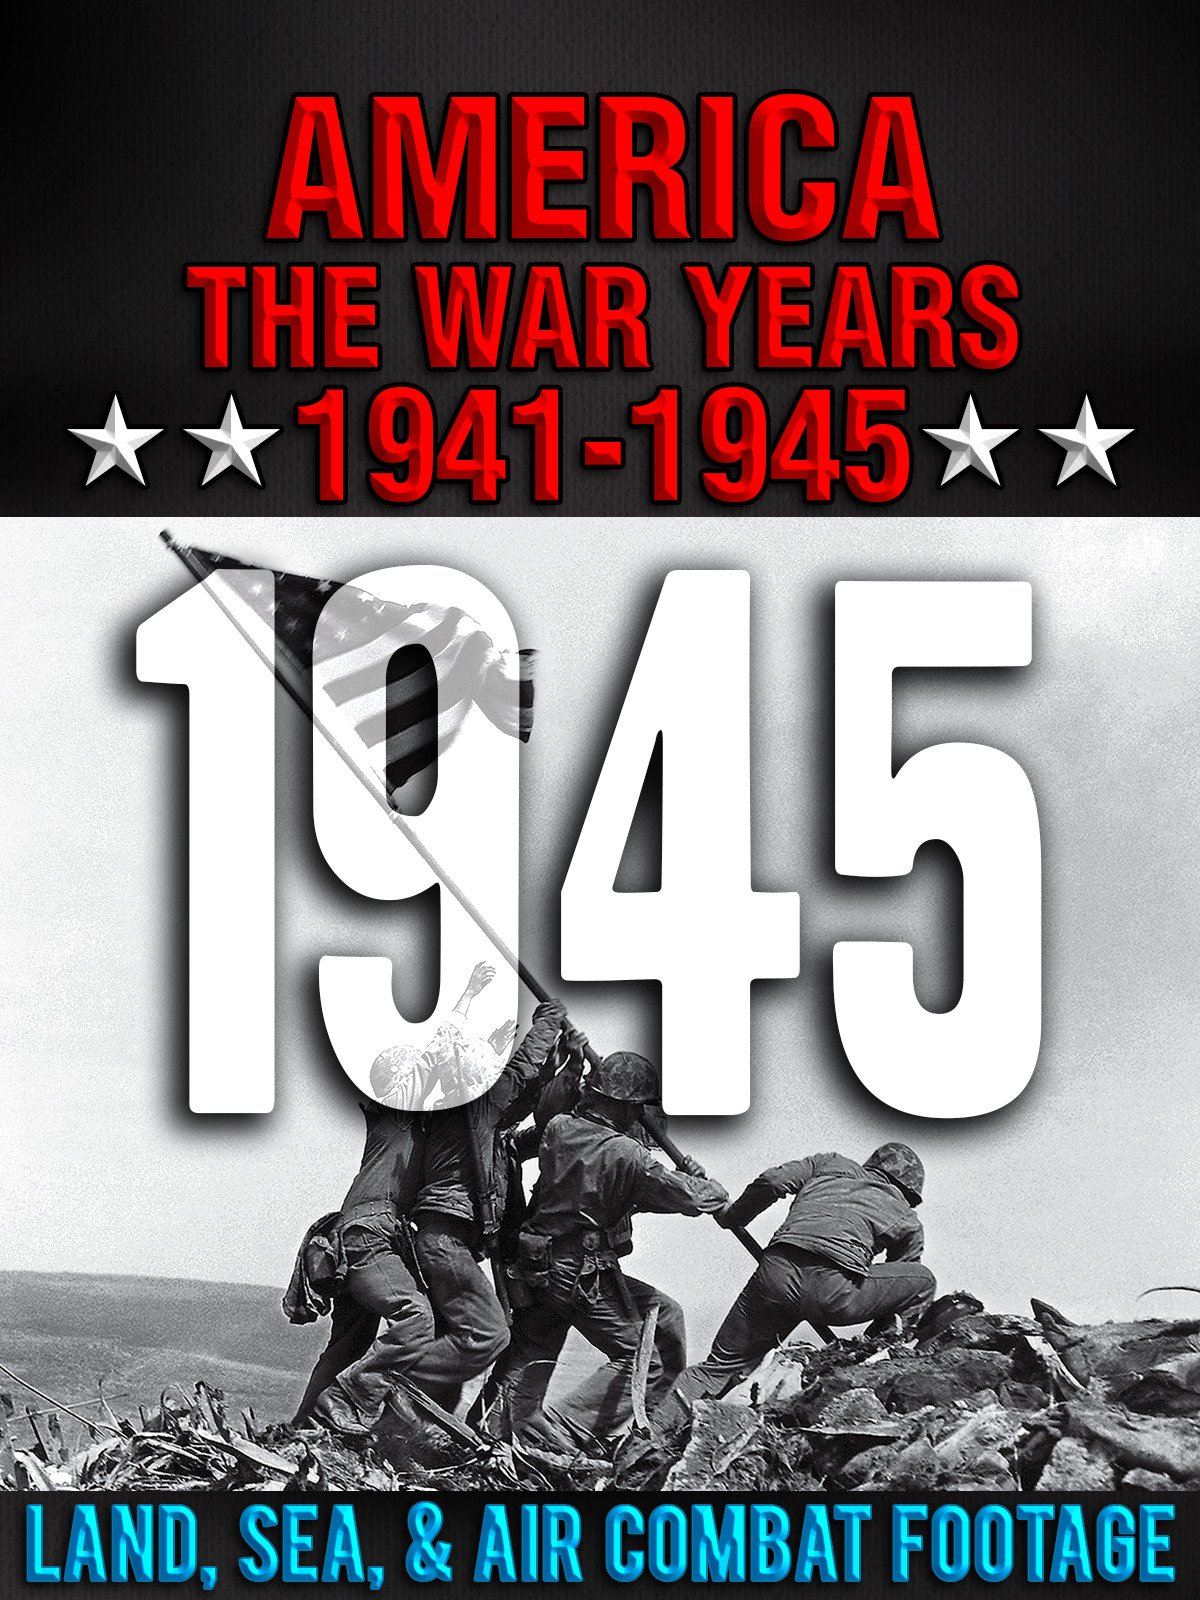 America The War Years 1941-1945: 1945 Land, Sea, Air Combat Footage on Amazon Prime Instant Video UK